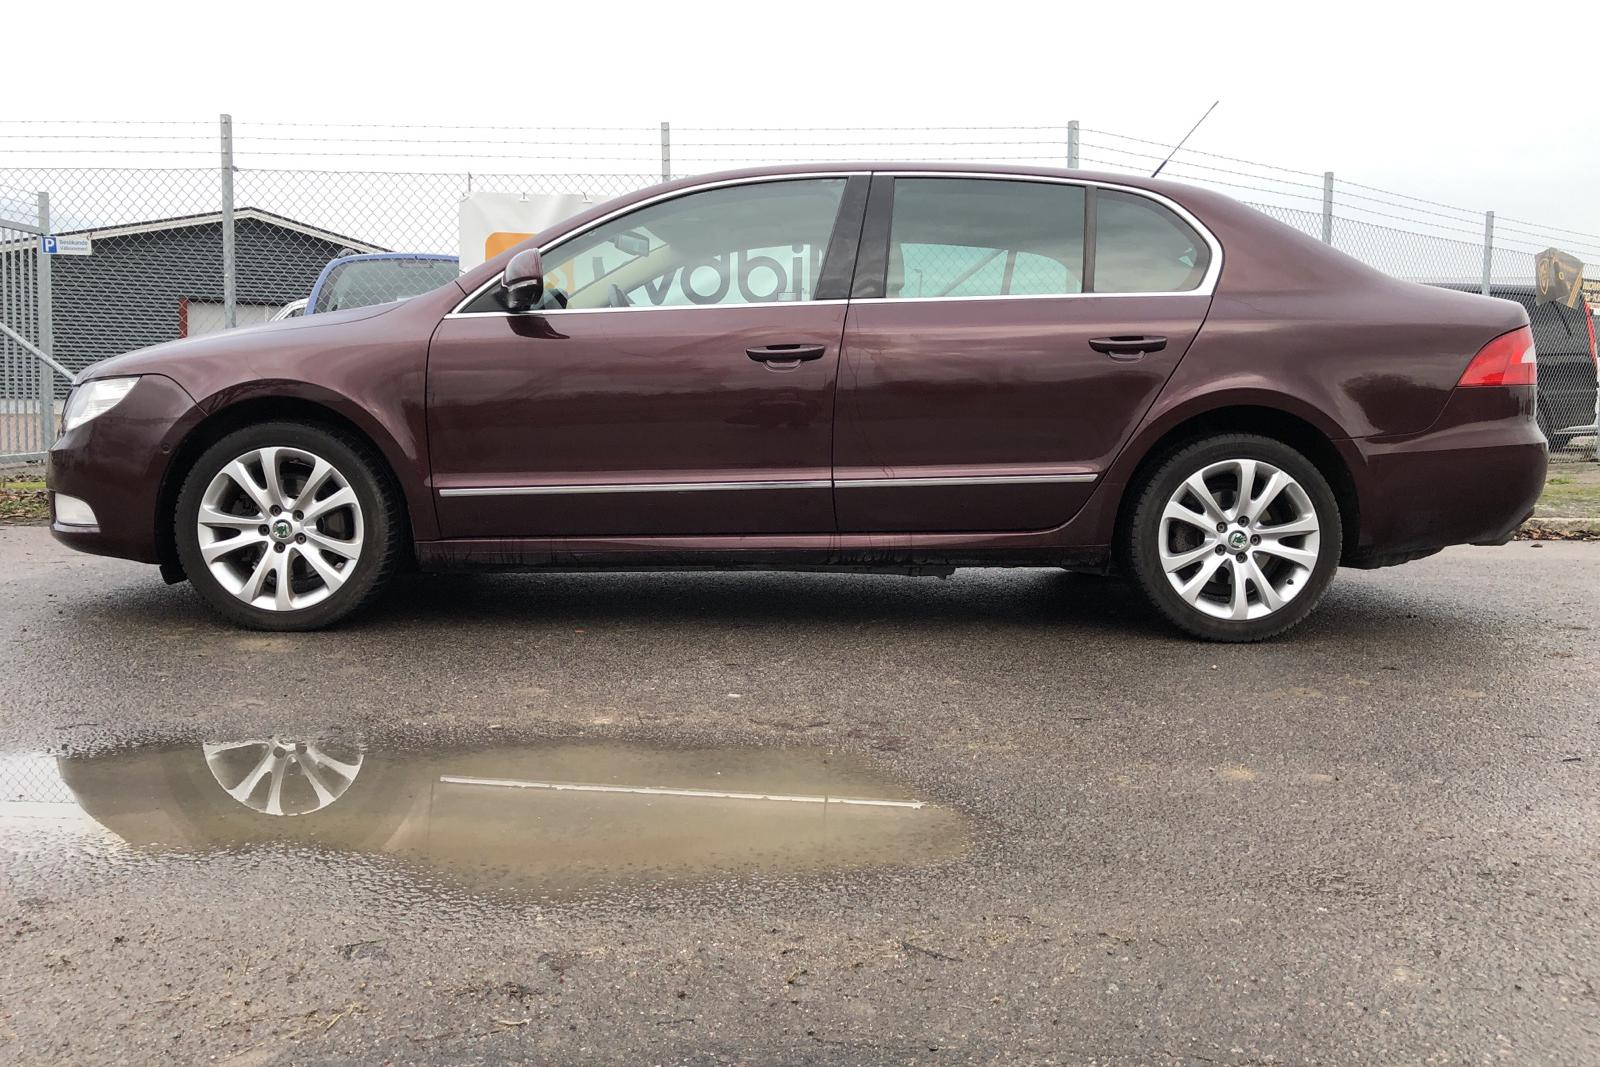 Skoda Superb 1.8 TSI (160hk) - 234 330 km - Automatic - Dark Red - 2010